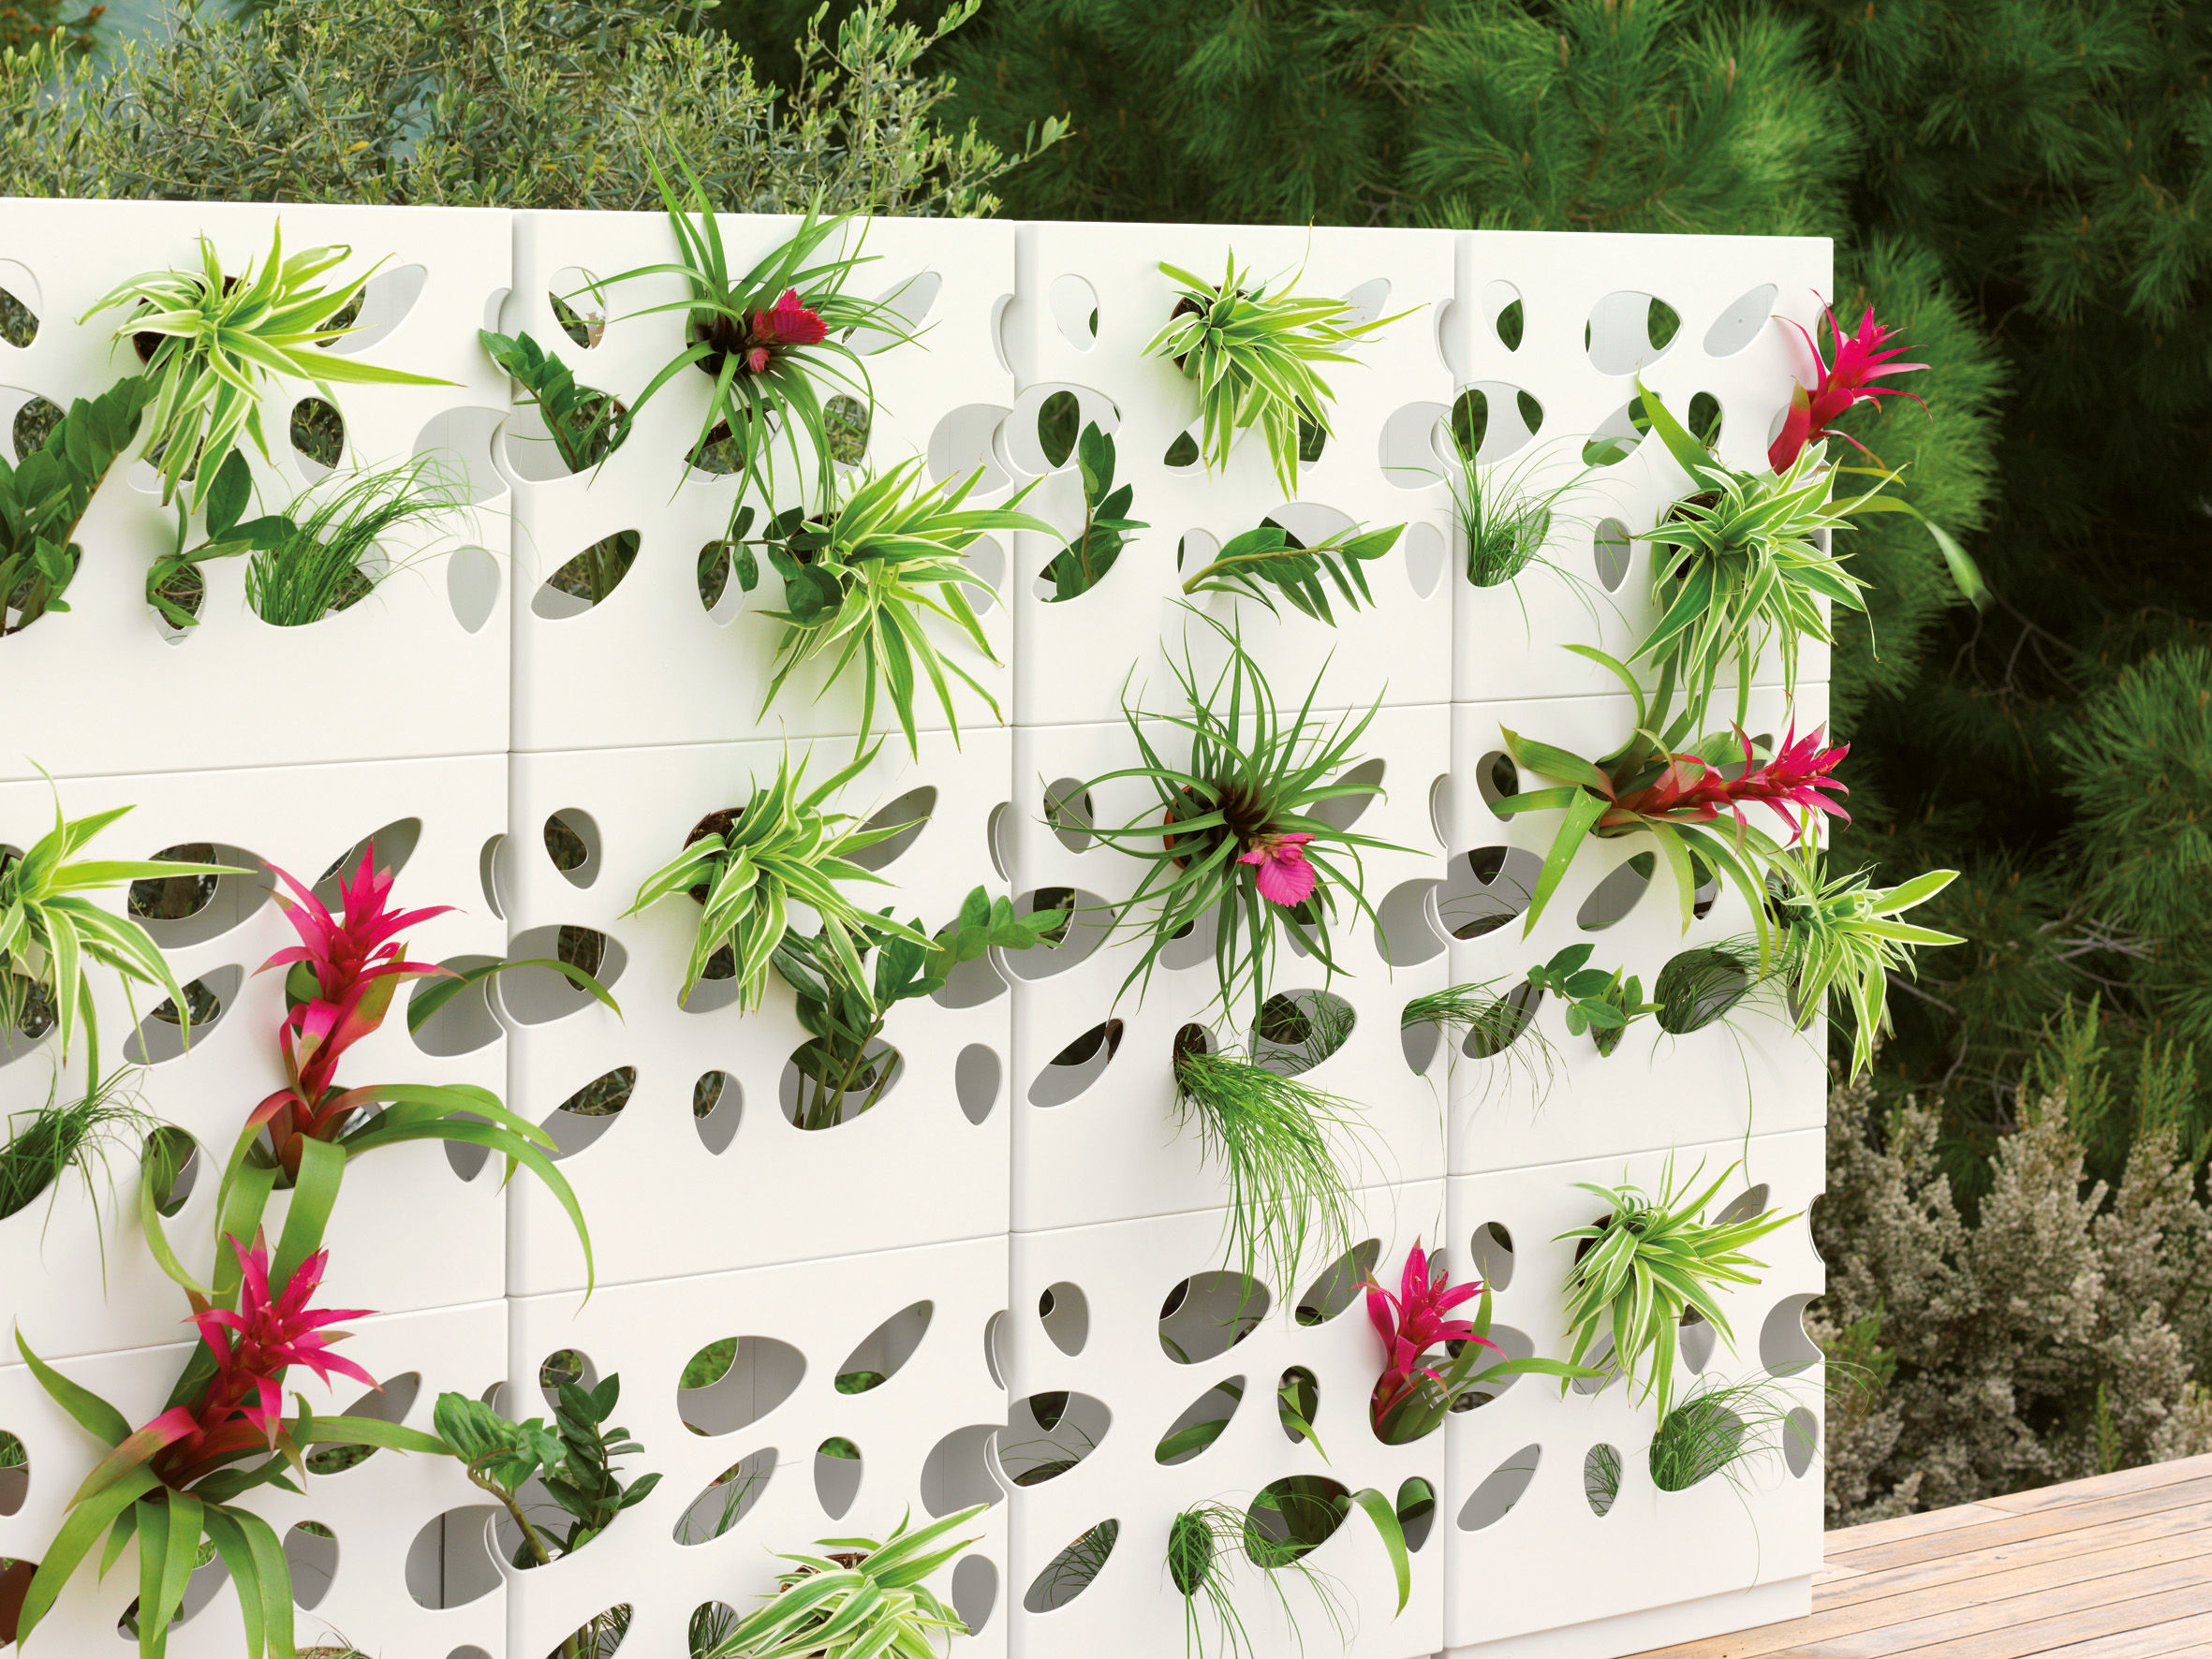 Jardini re garden wall empilable jardini re blanche viteo made in design - Jardiniere design ...